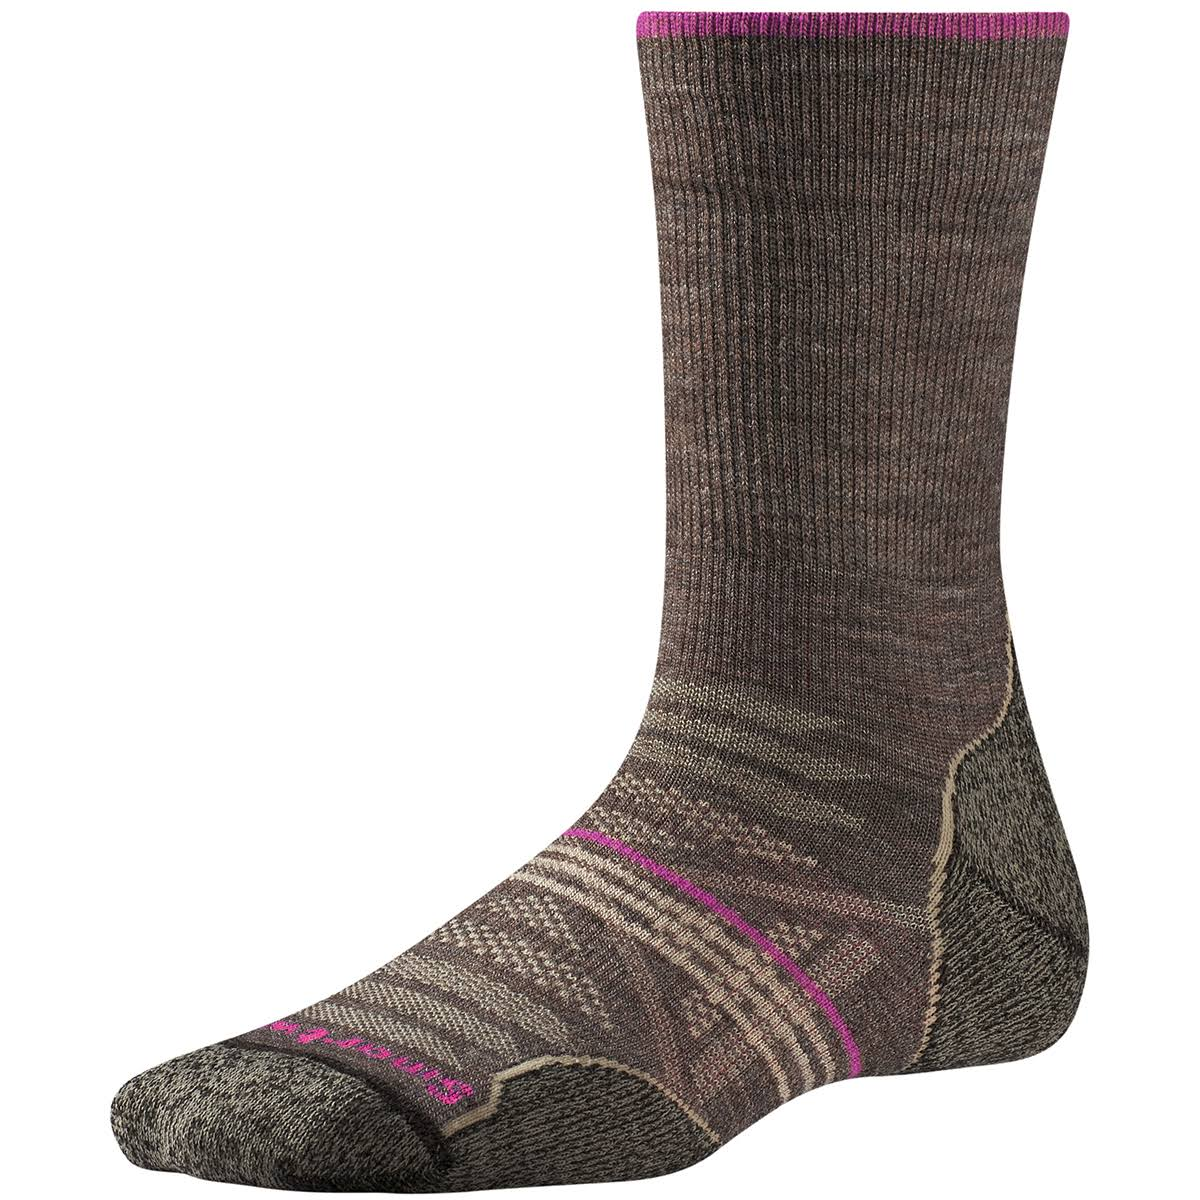 Smartwool Women's PHD Outdoor Light Crew Socks - Taupe, Medium